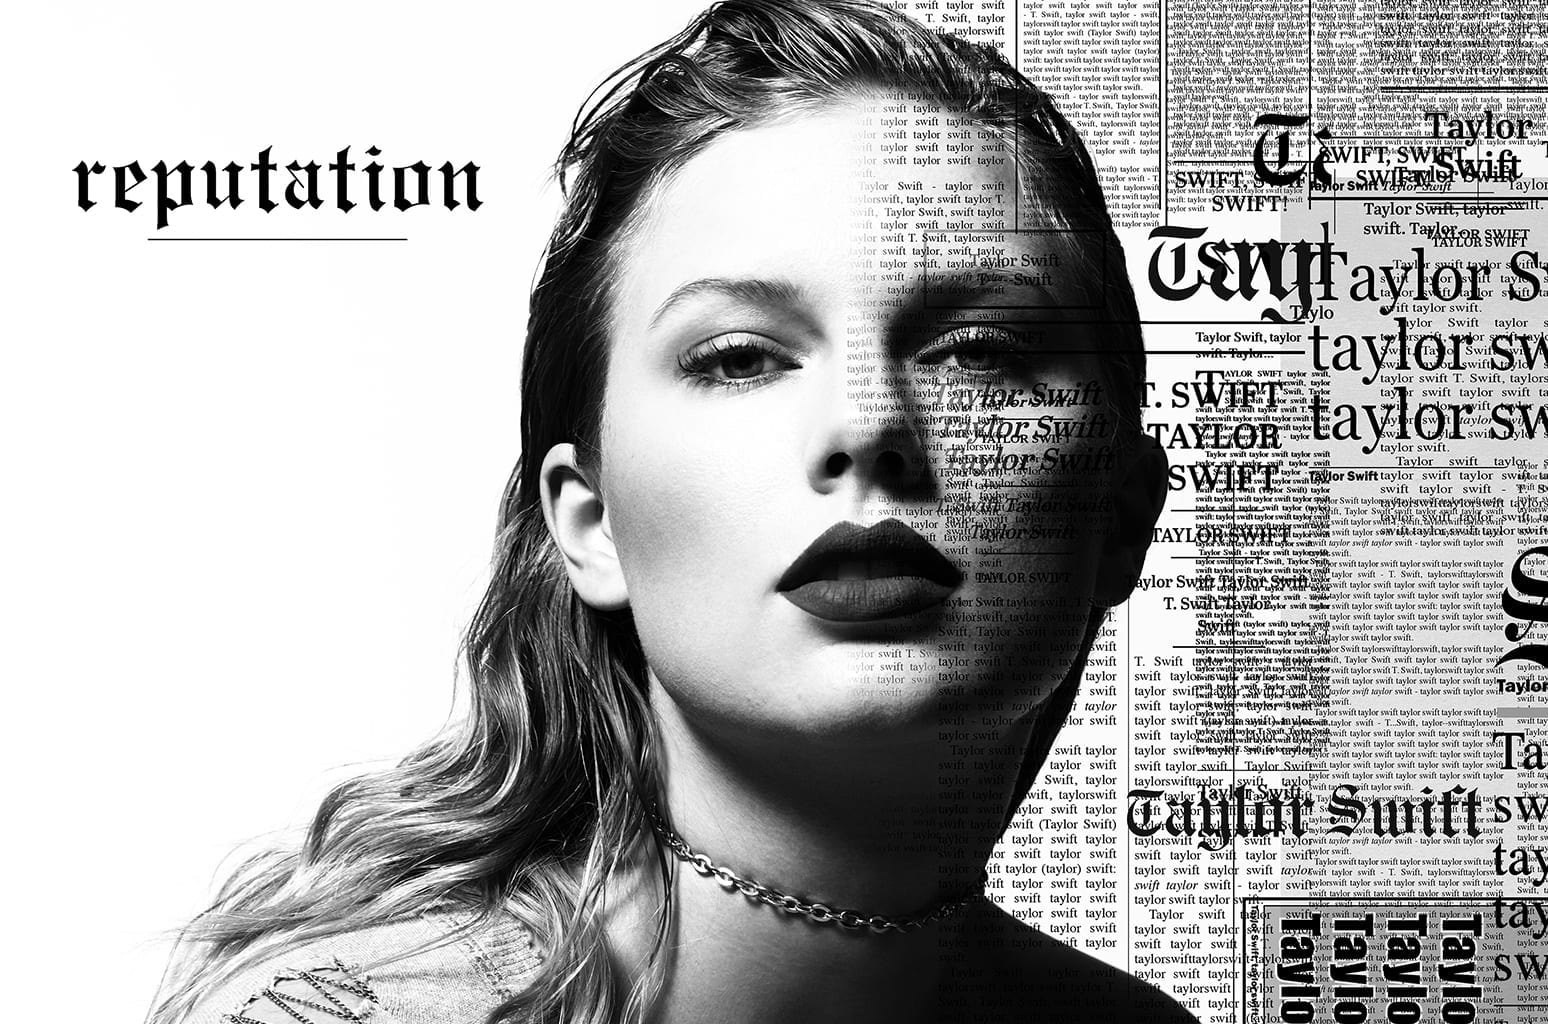 Album Review: reputation // Taylor Swift